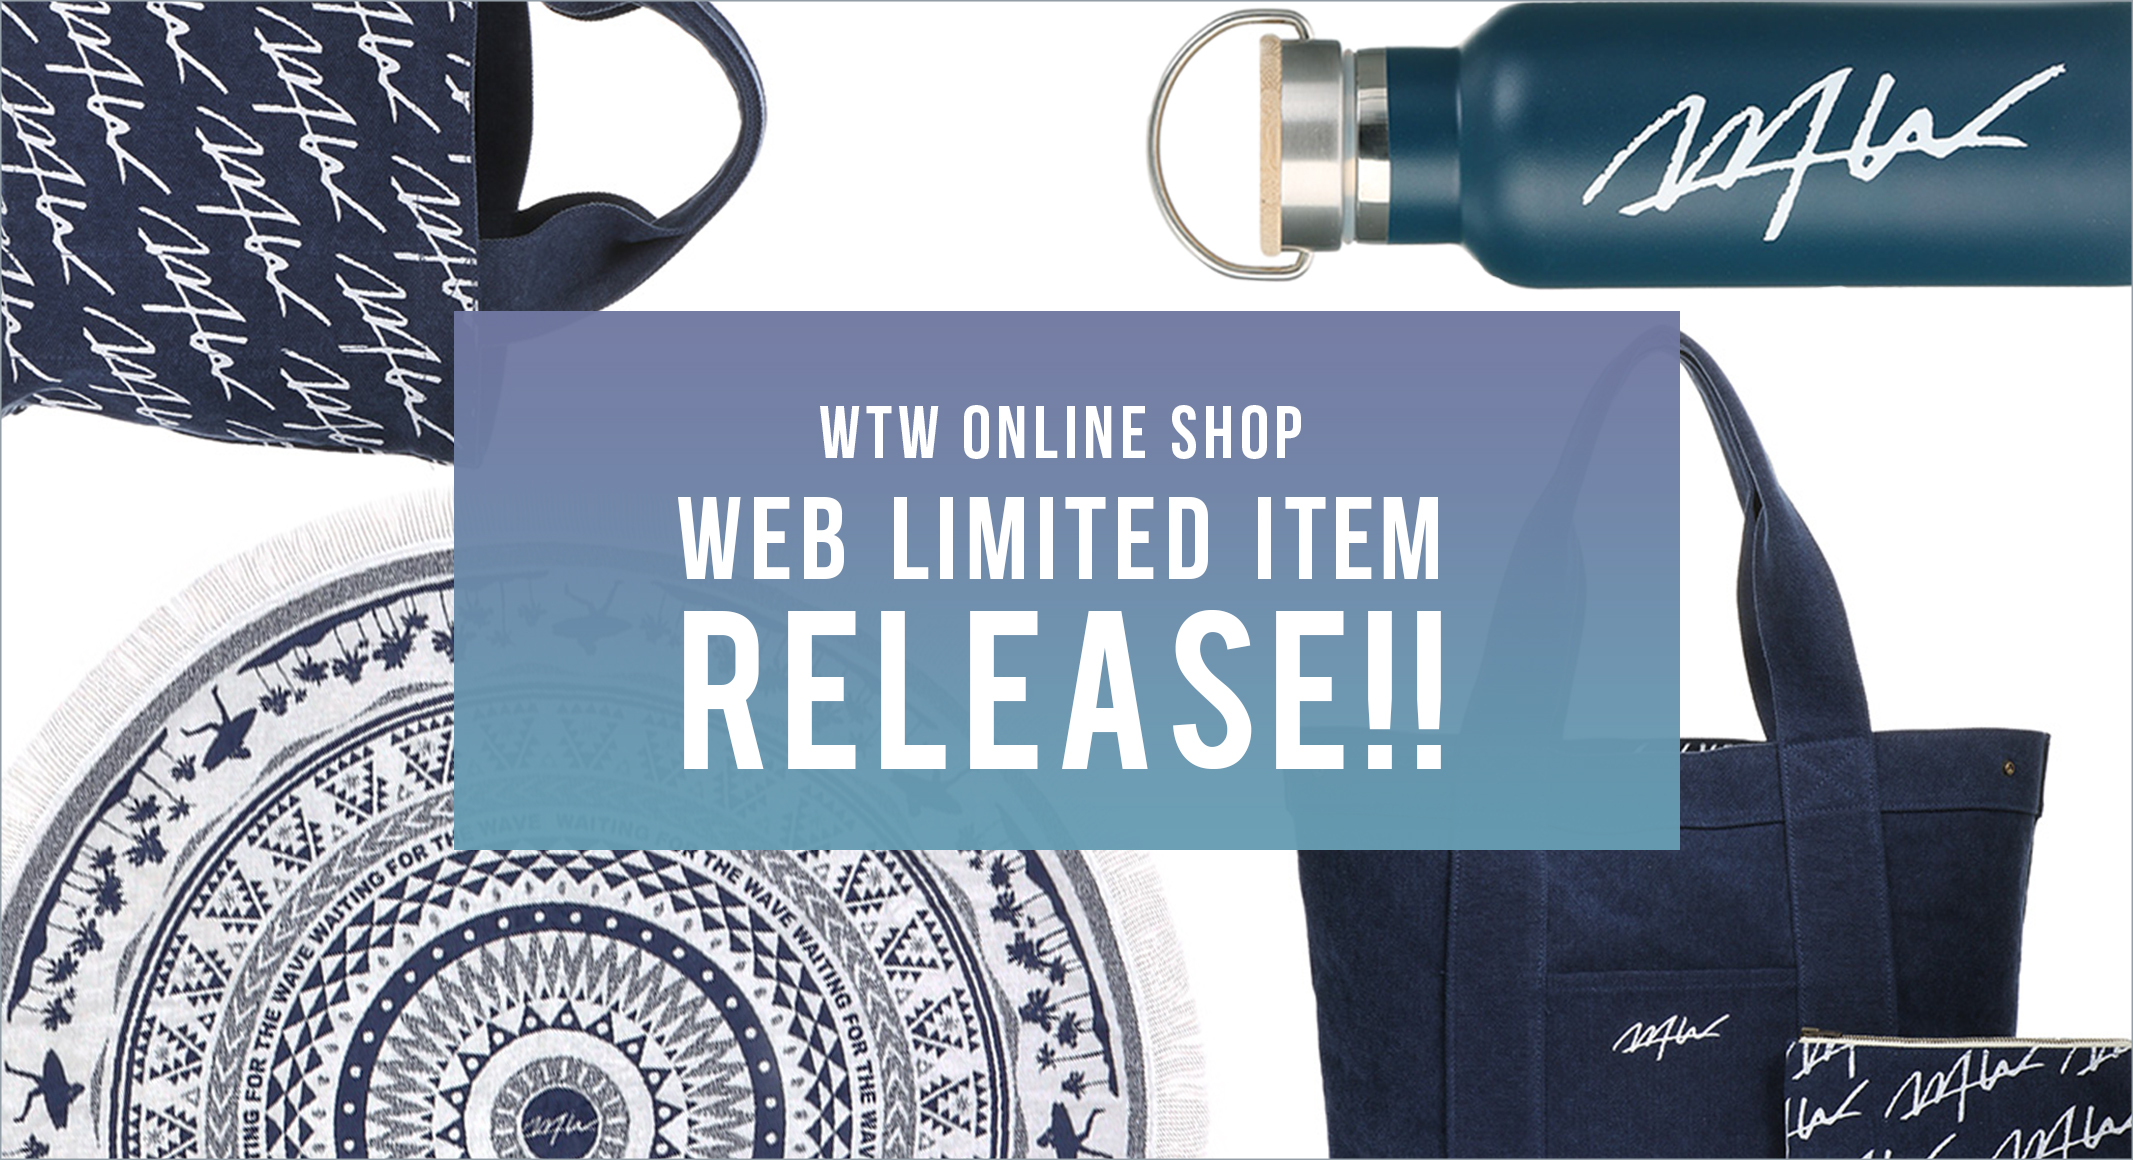 WEB LIMITED ITEM RELEASE